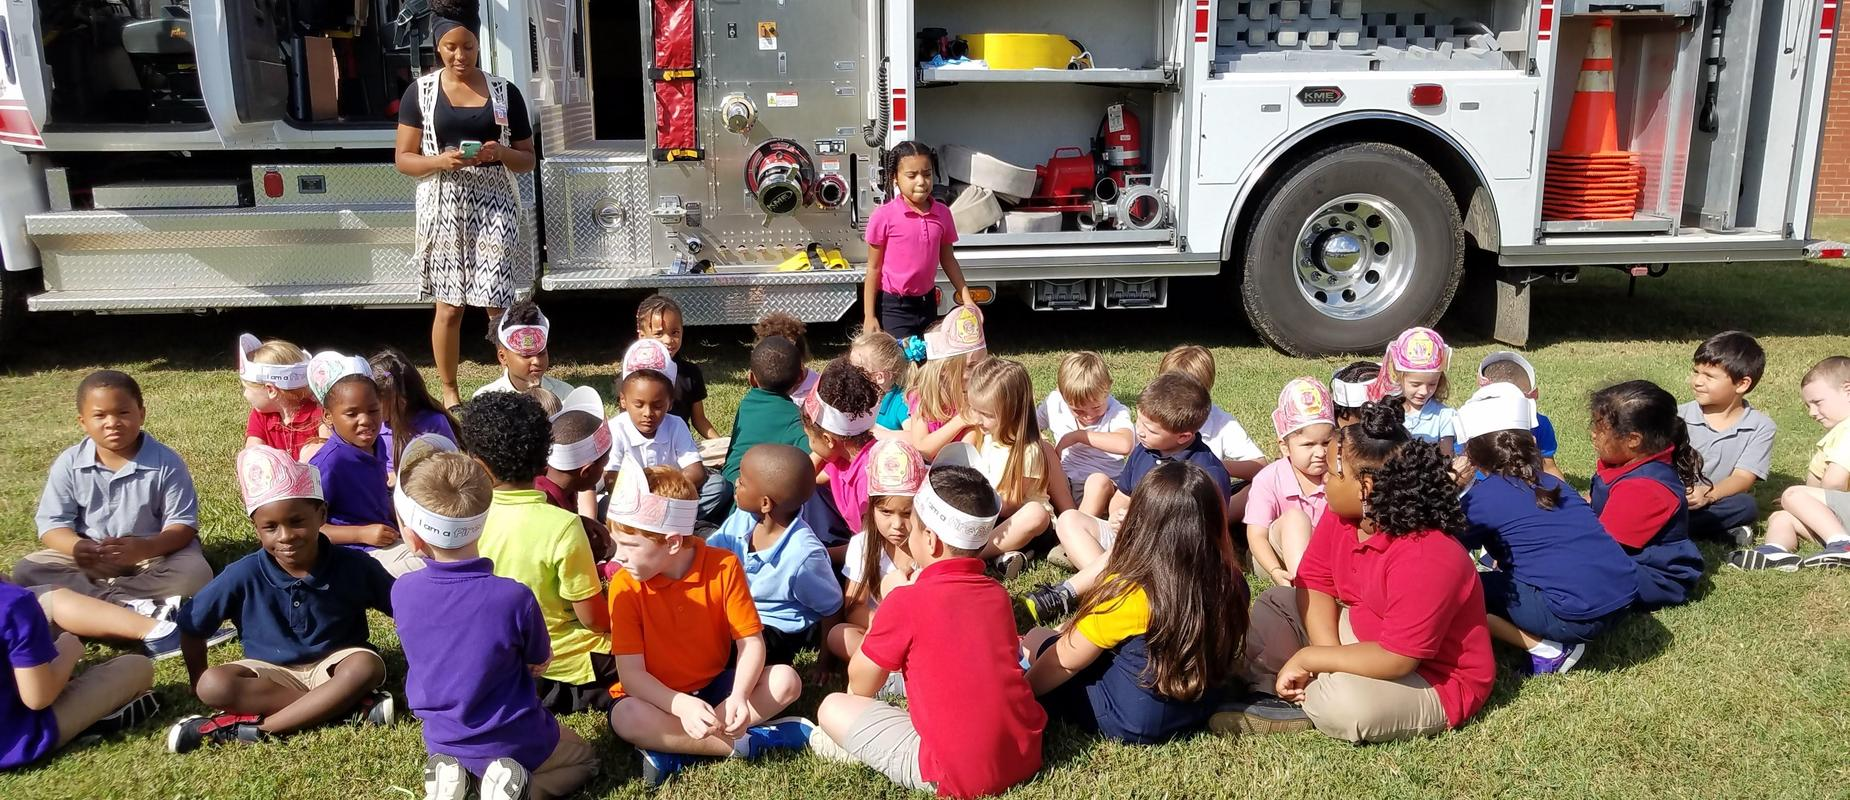 students sitting in grass in front of a fire truck